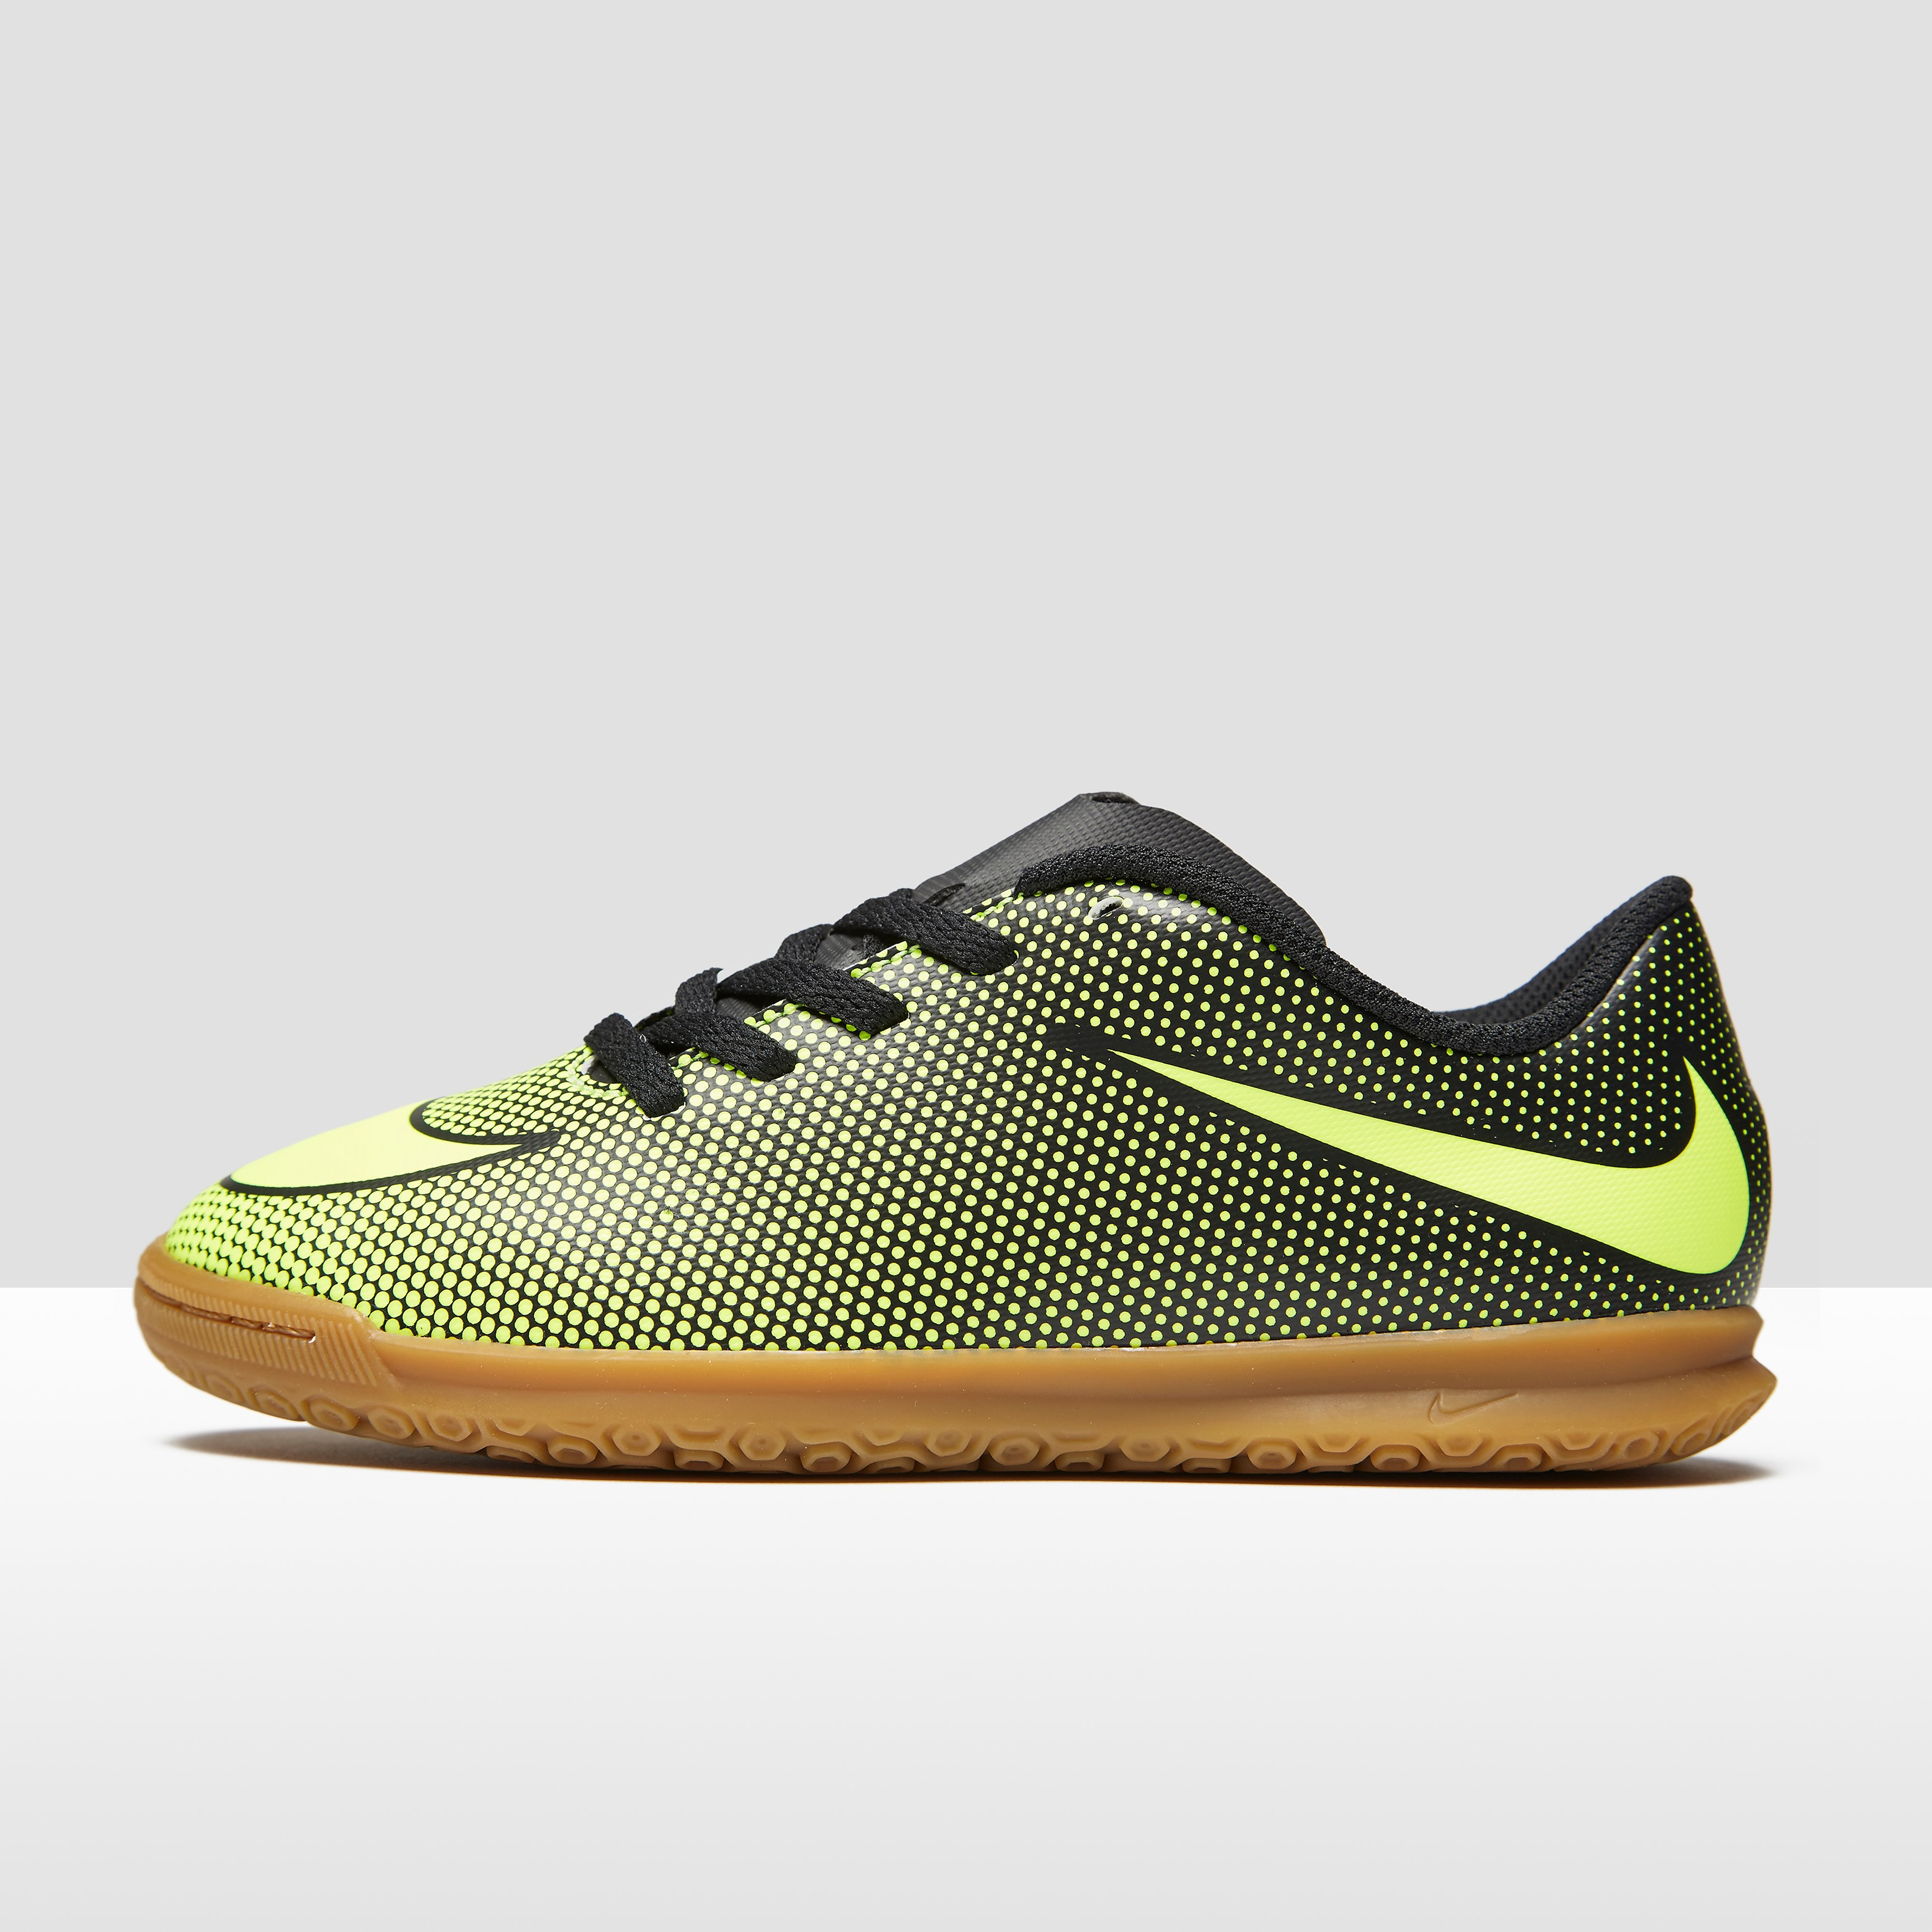 NIKE BRAVATAX II IC JR